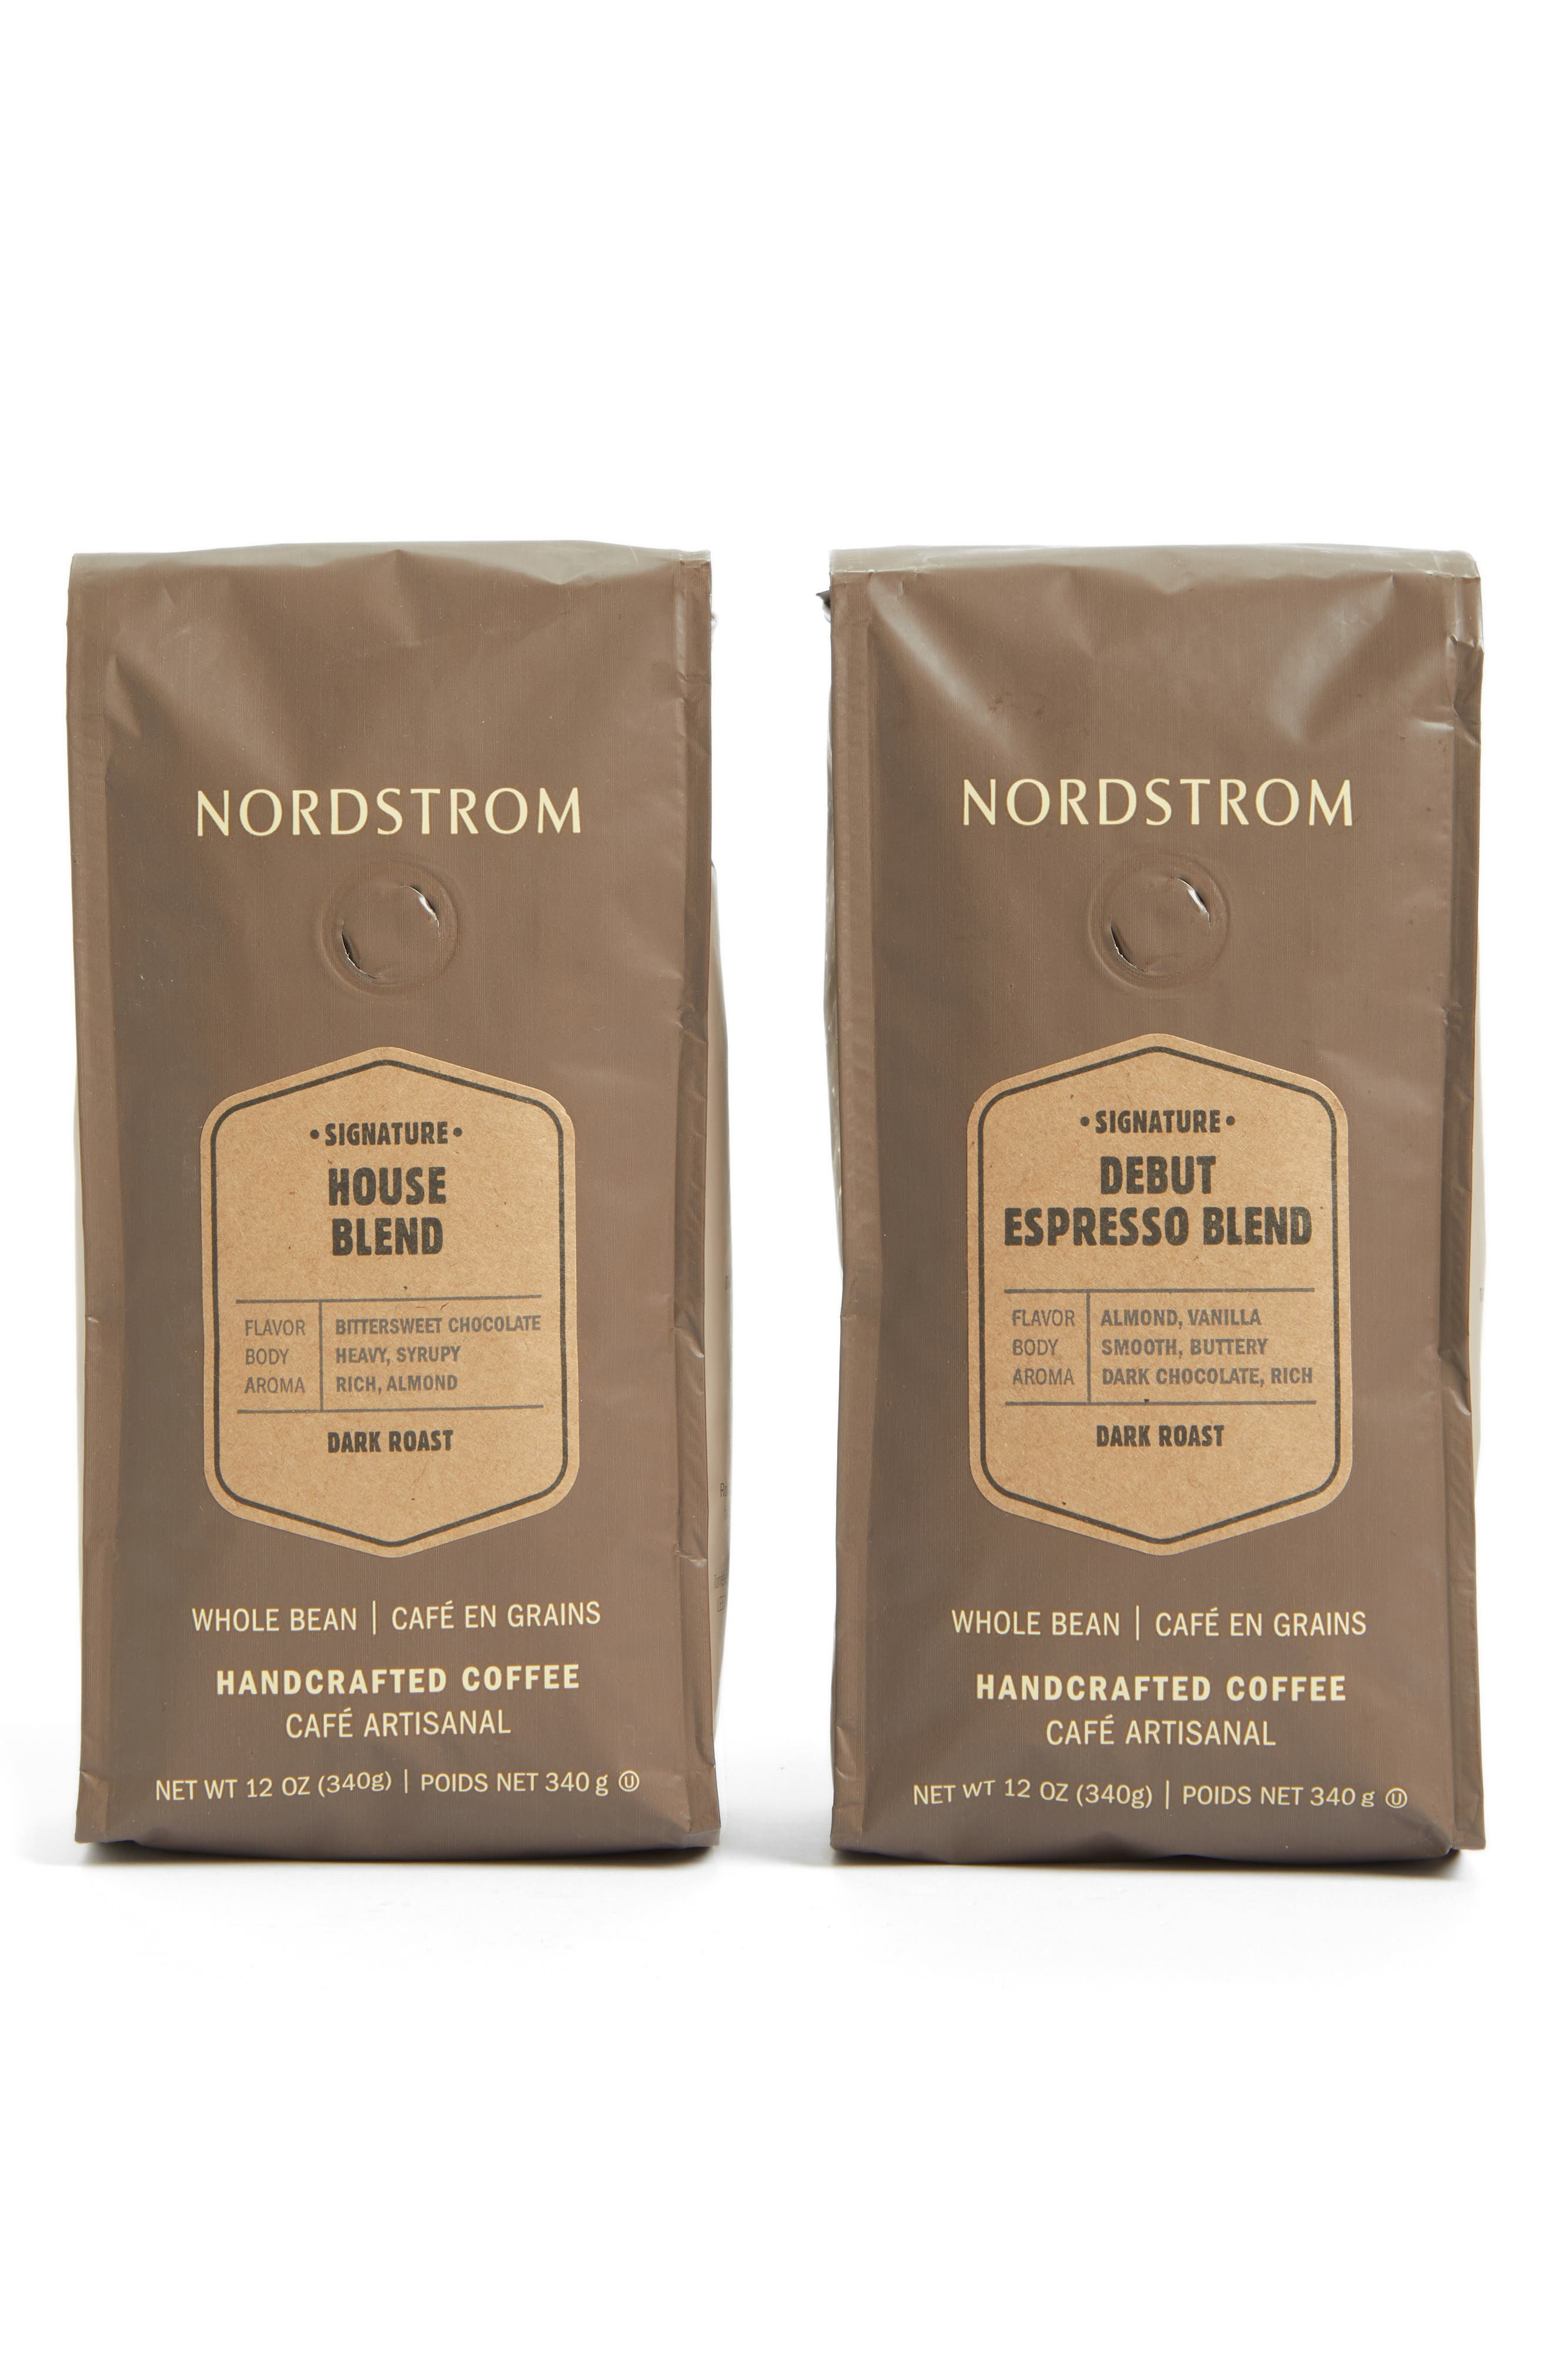 Main Image - Nordstrom Coffee 'Debut Espresso Blend' & 'House Blend' Whole Bean Coffee (2-Pack)